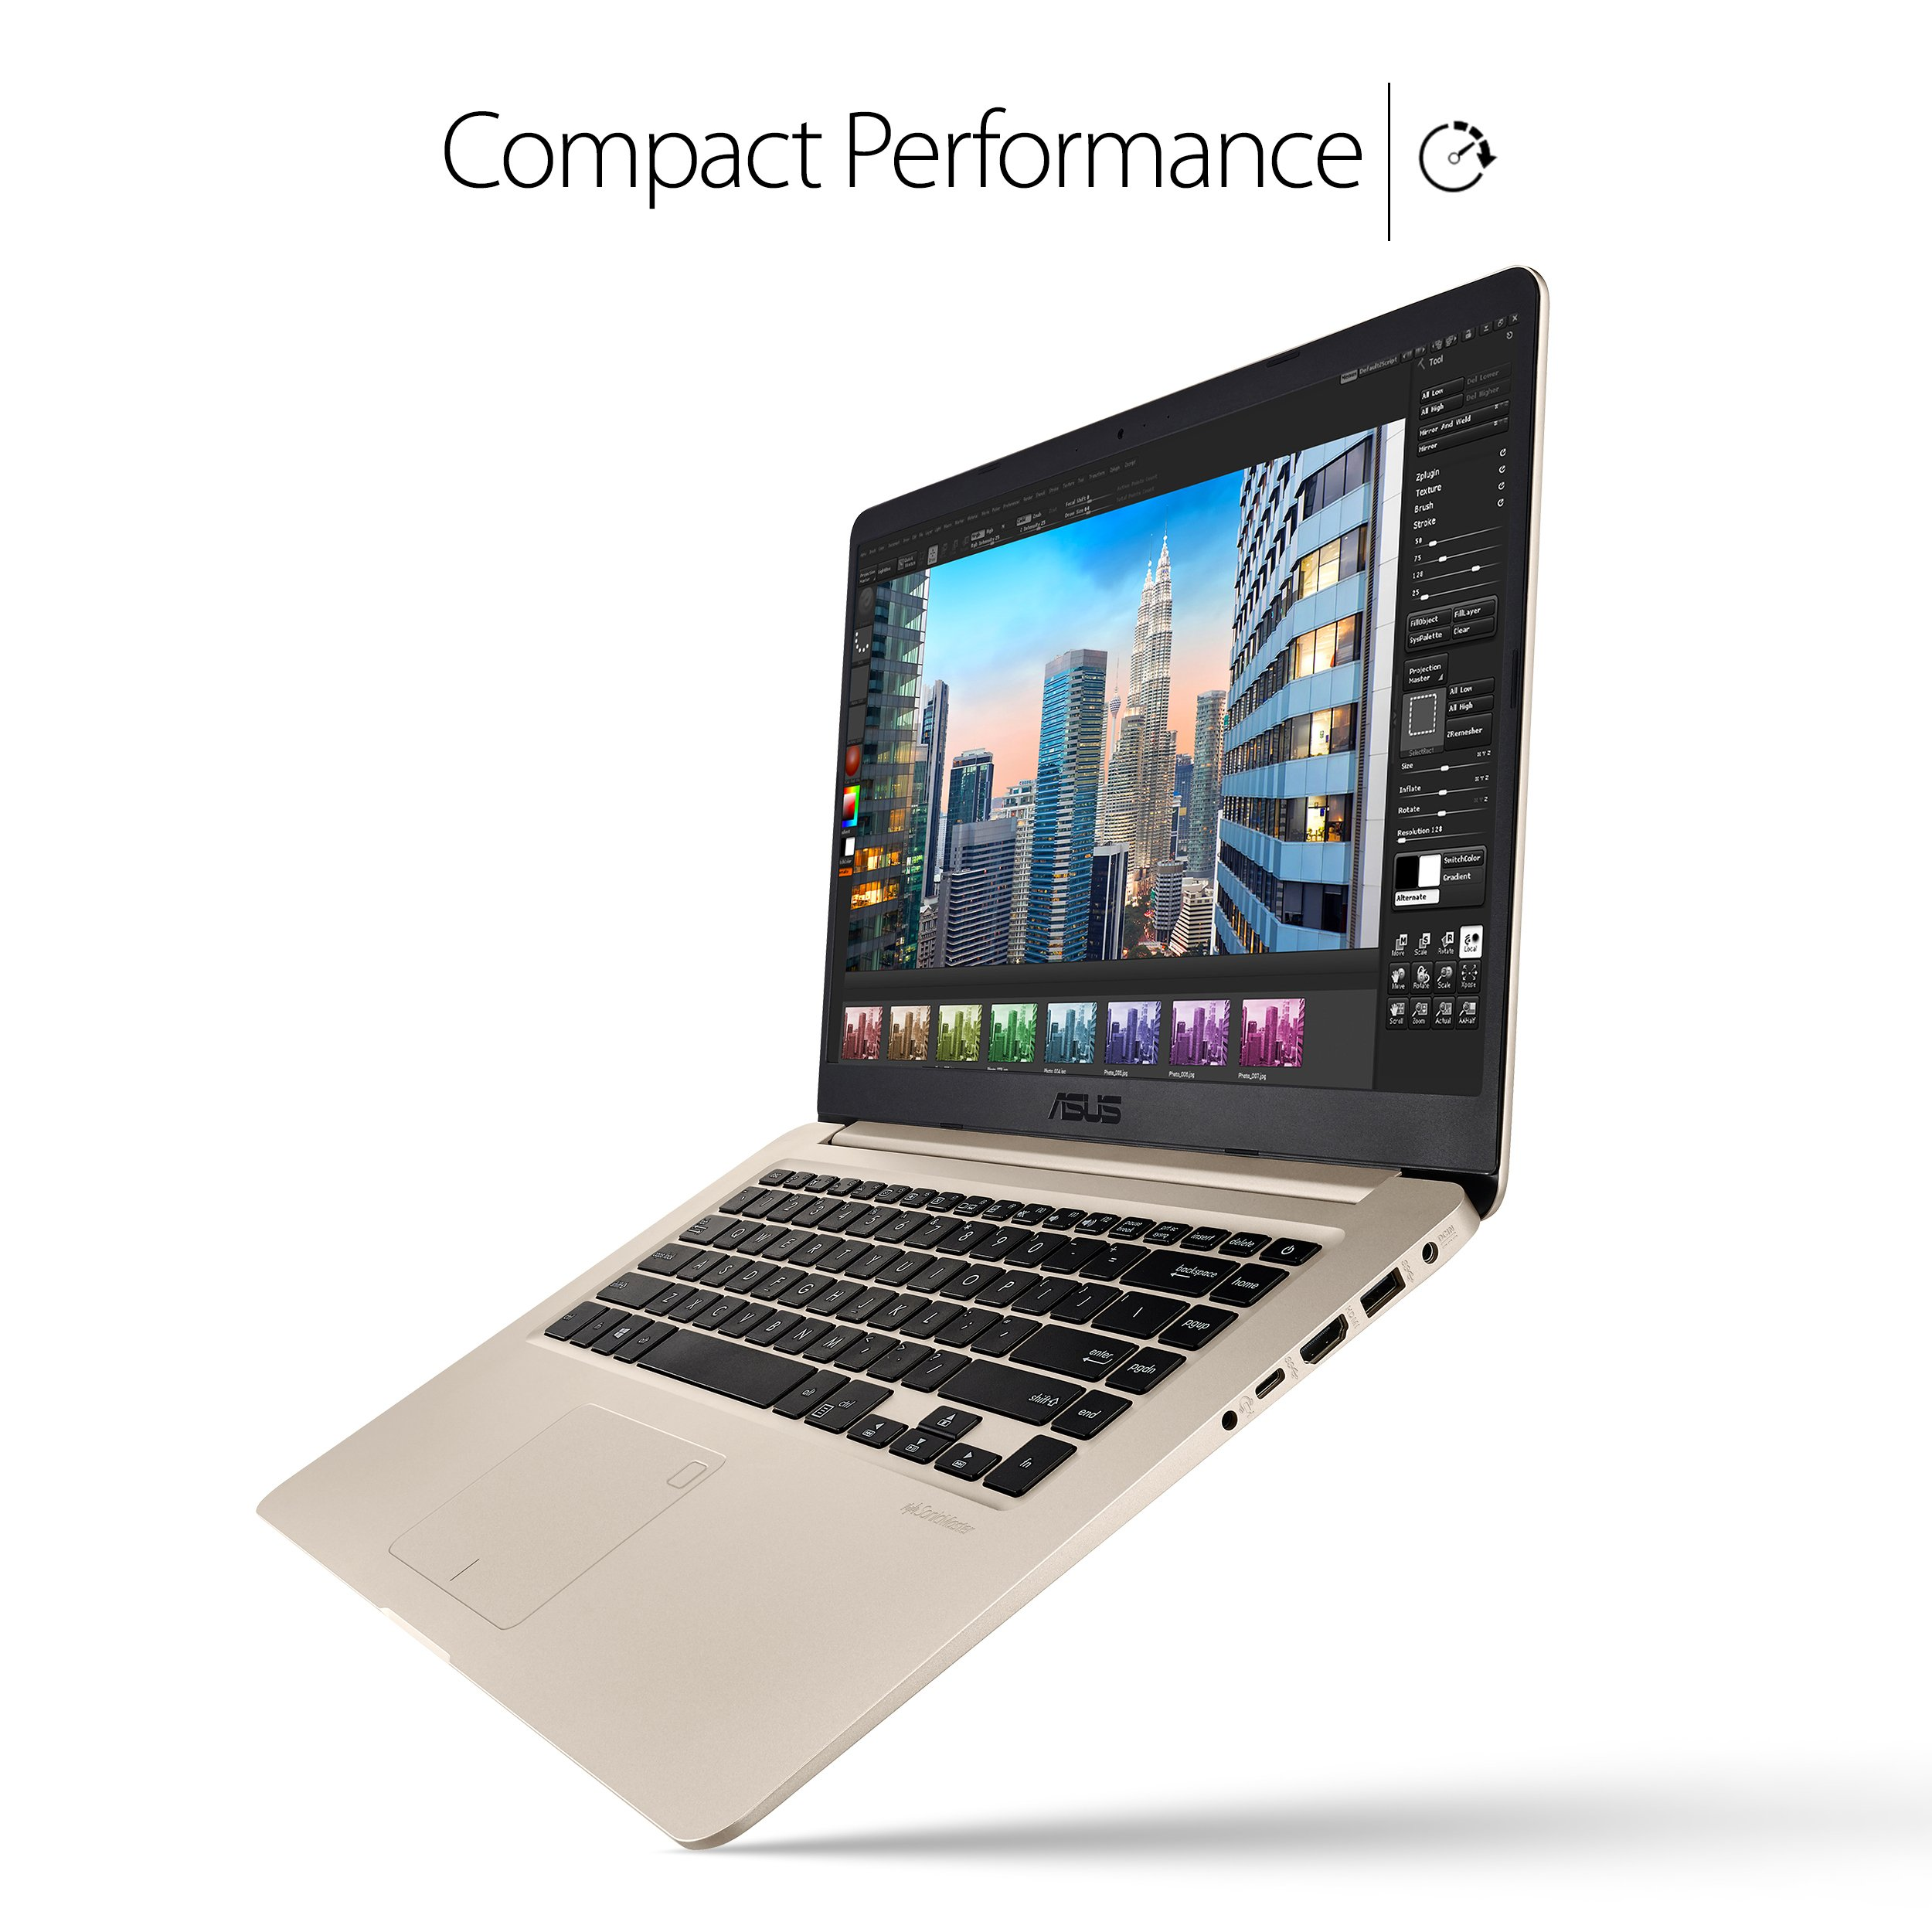 """ASUS VivoBook S Ultra Thin and Portable Laptop, Intel Core i7-8550U Processor, 8GB DDR4 RAM, 128GB SSD+1TB HDD, 15.6"""" FHD WideView Display, ASUS NanoEdge Bezel, S510UA-DS71 by ASUS (Image #2)"""